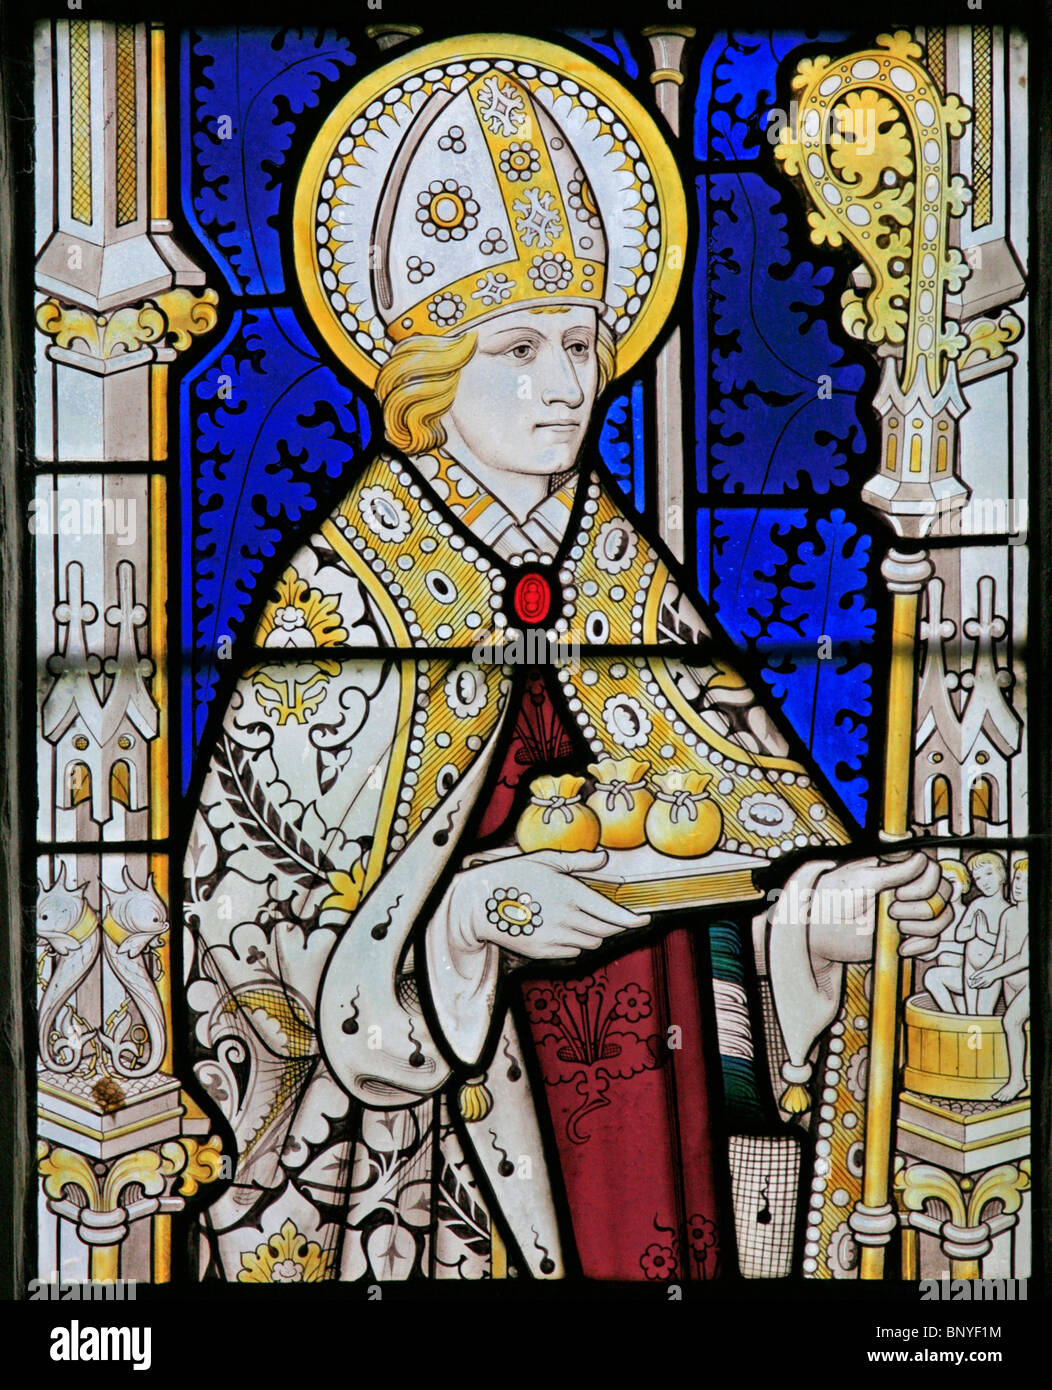 A stained glass window depicting St Nicholas of Myra holding three bags of gold, All Saints Church, Ladbroke, Warwickshire Stock Photo